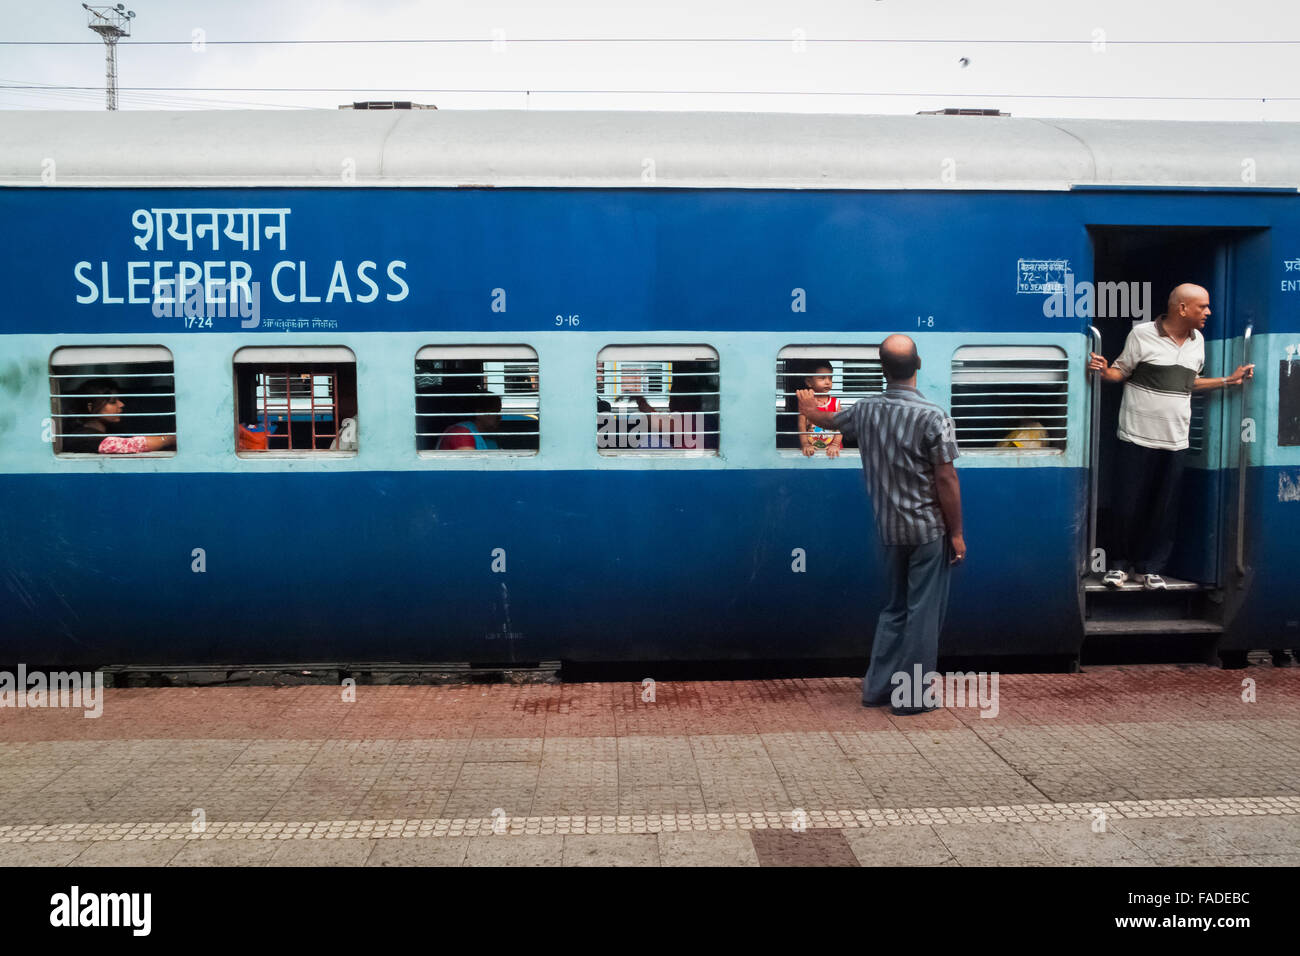 People outside a sleeper class of India railway service. - Stock Image